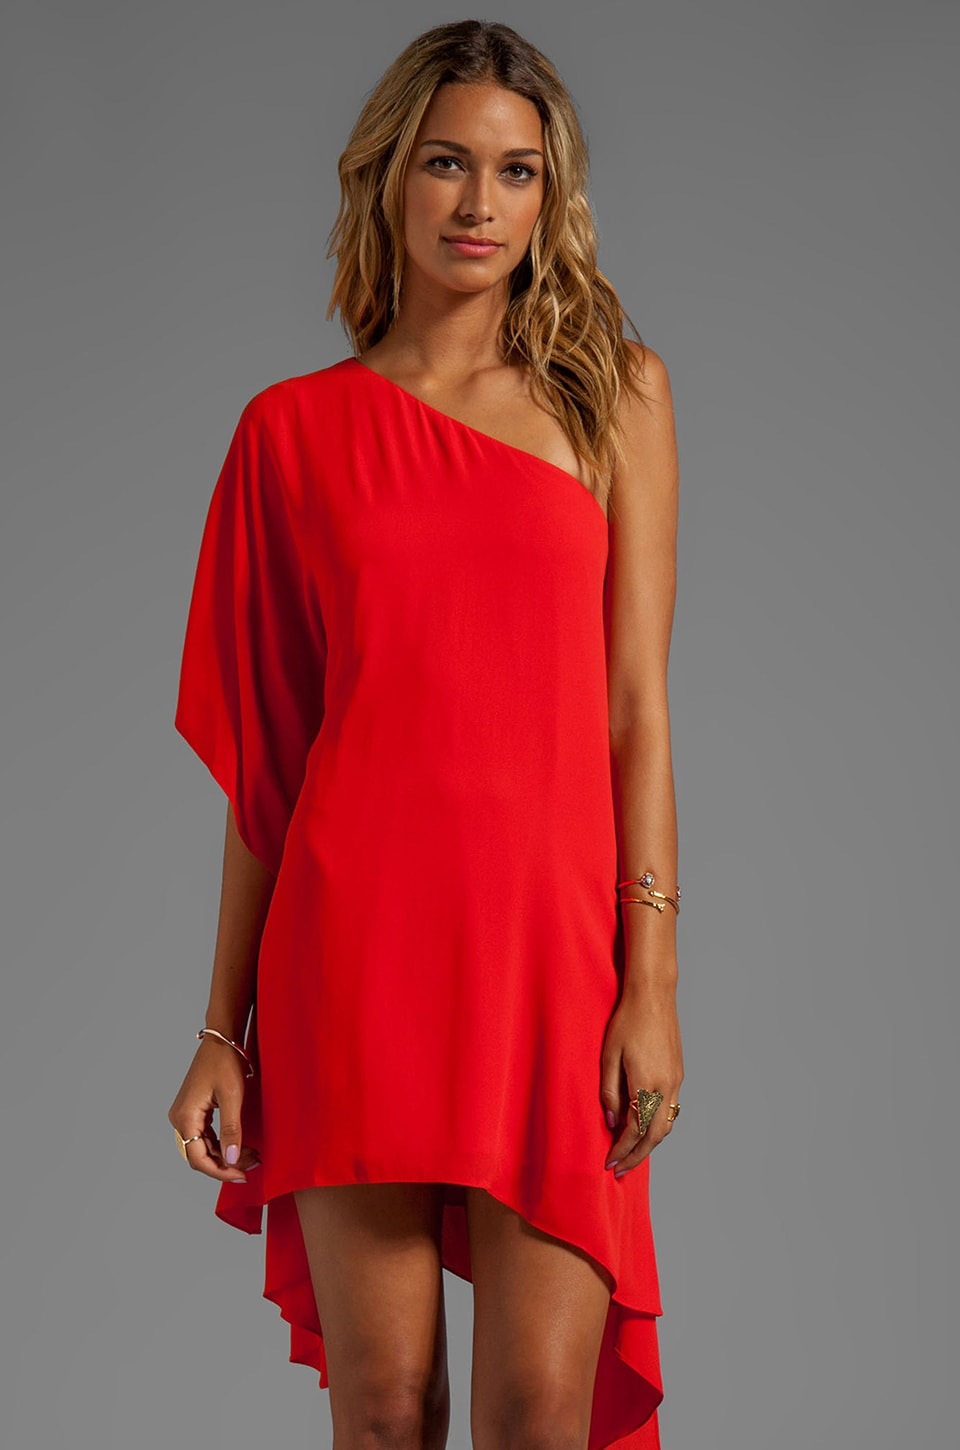 BCBGMAXAZRIA One Shoulder Dress in Bright Red